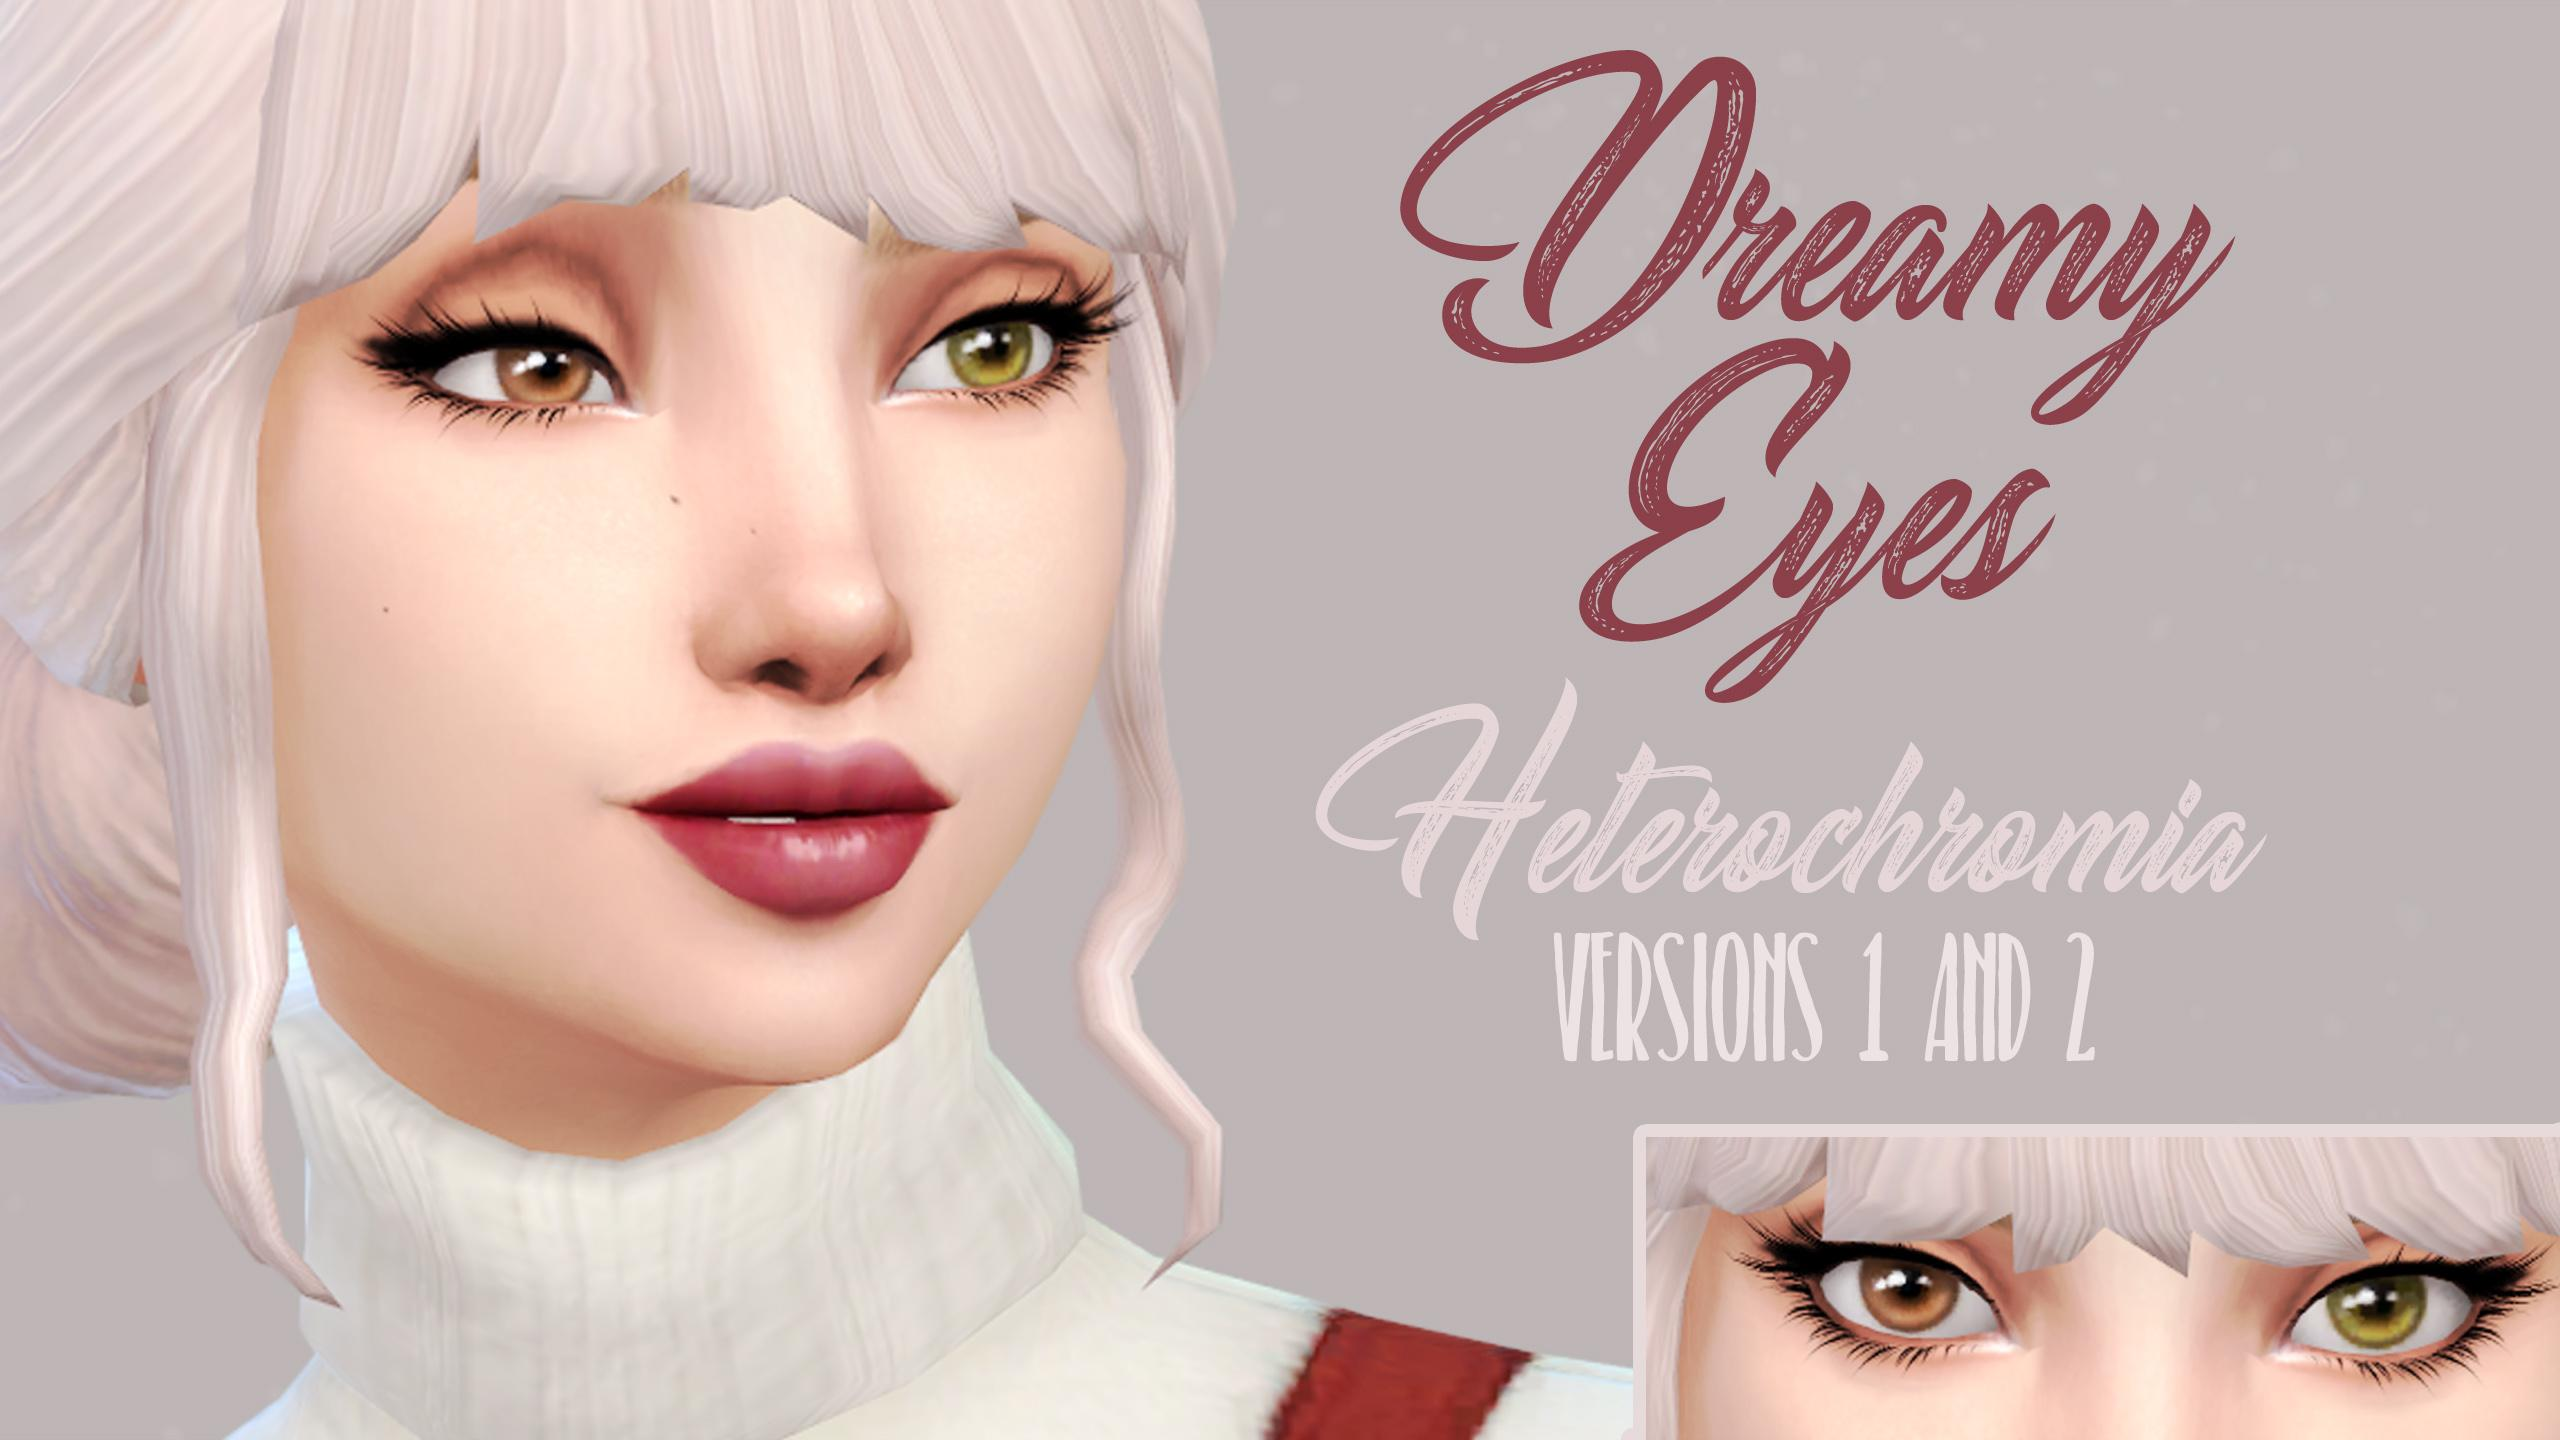 Heterochromia - Dreamy Eyes